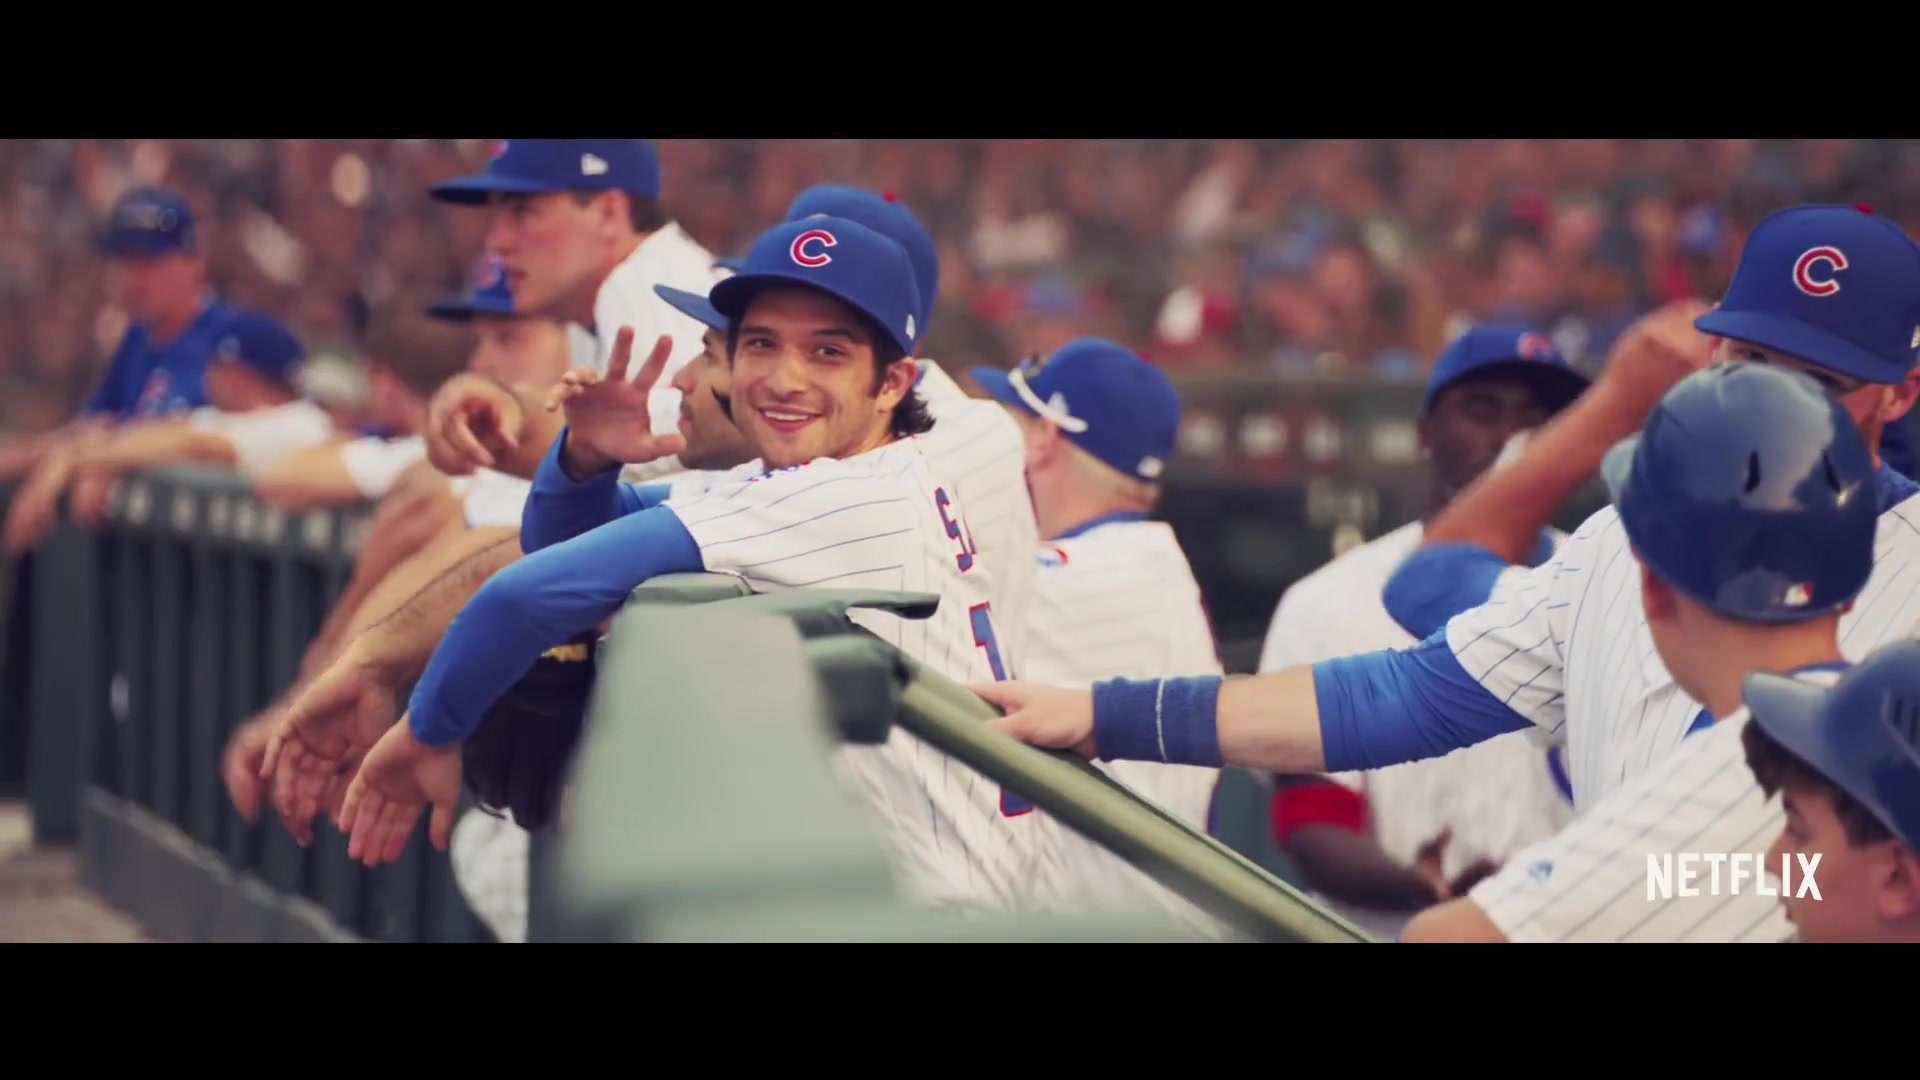 chicago cubs baseball uniform and cap worn by tyler posey